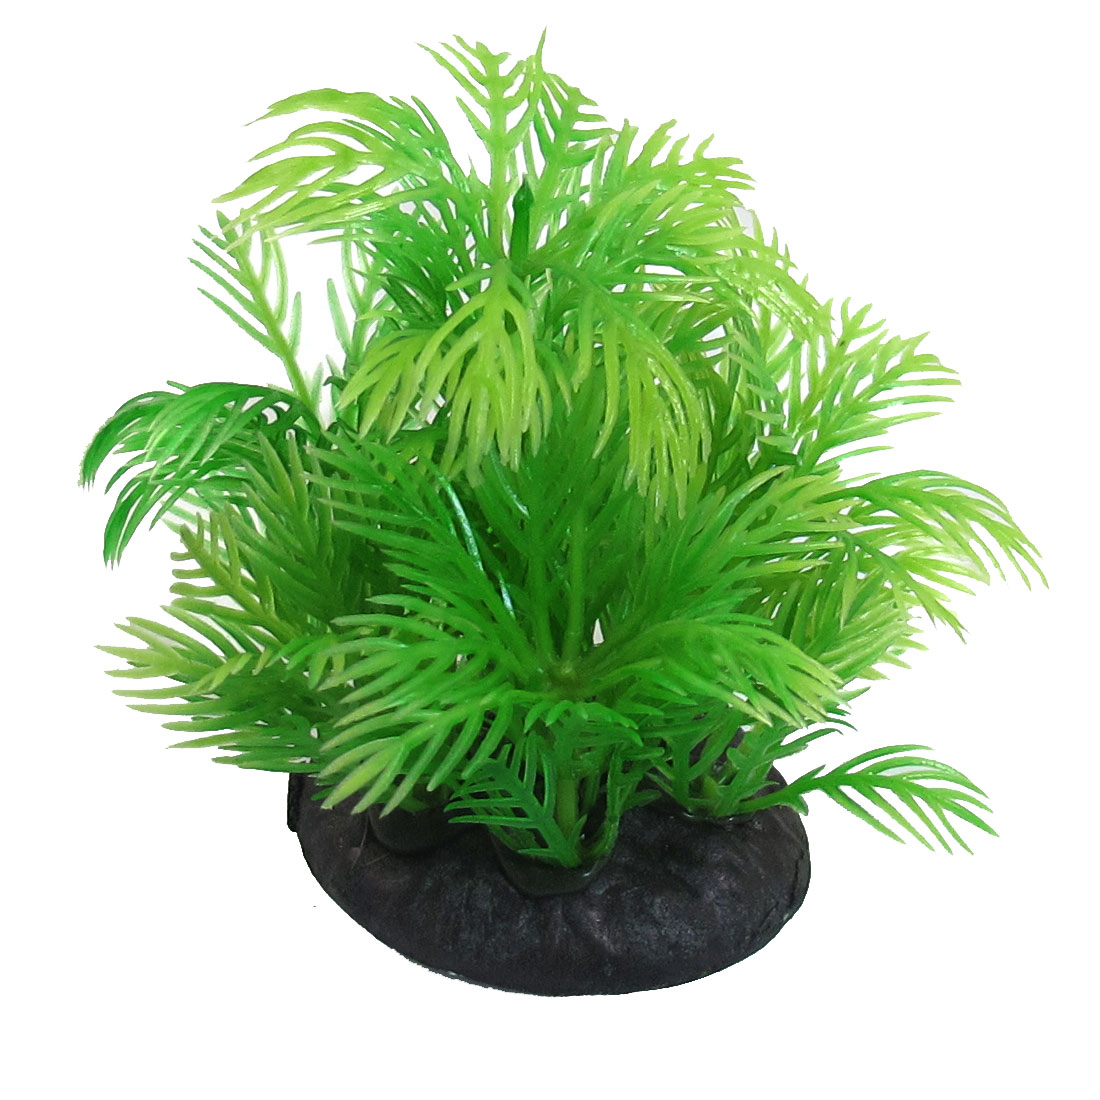 8cm Green Aquarium Plastic Grass Plant w Ceramic Base